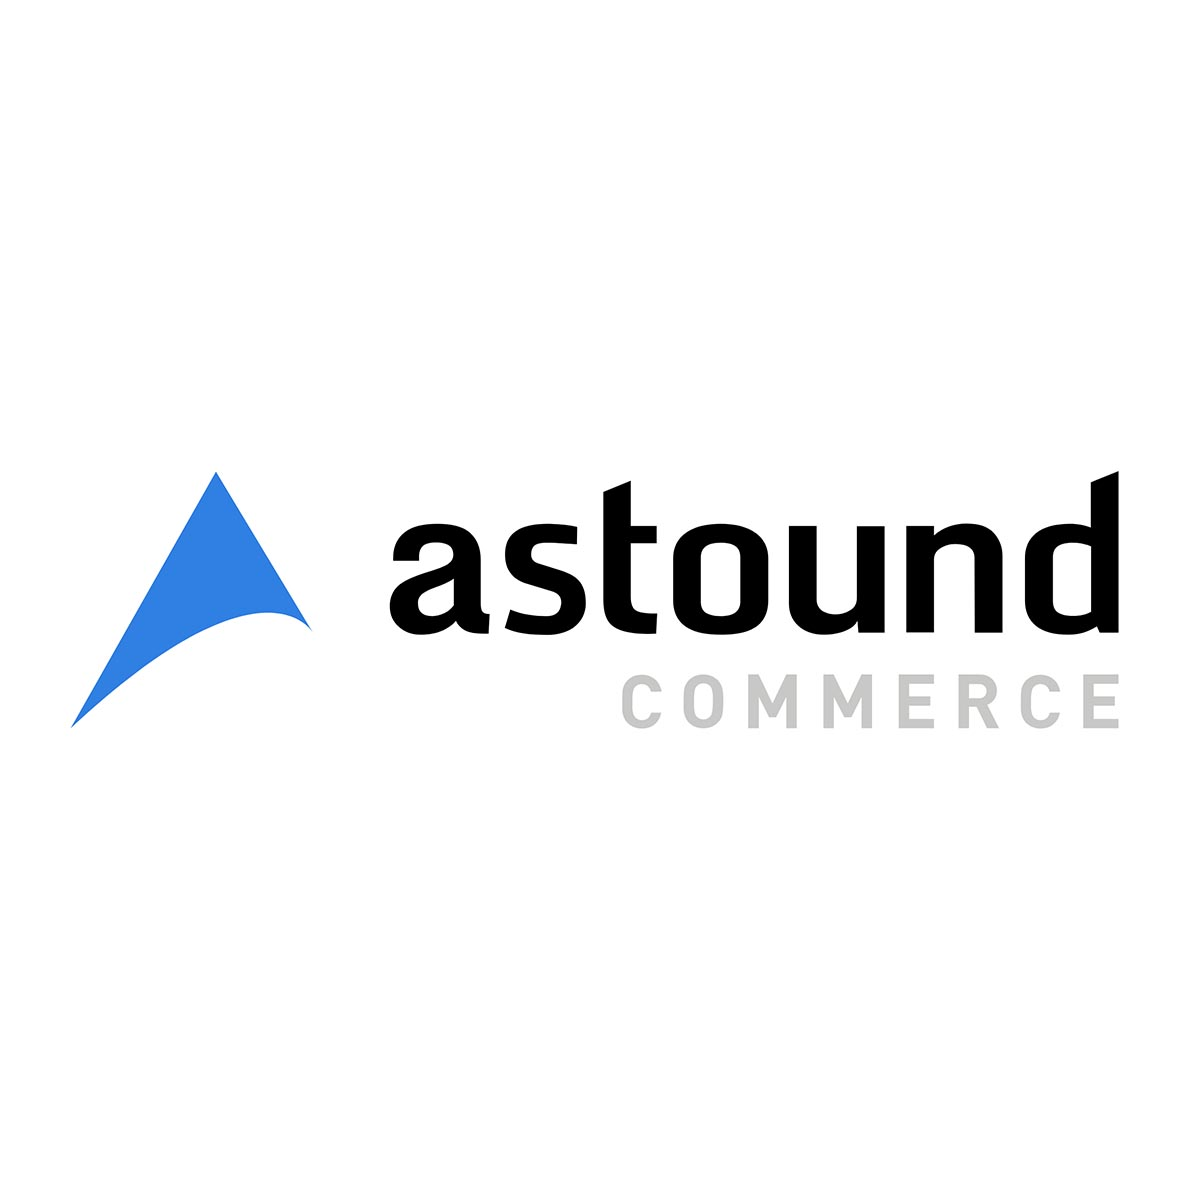 Home - Astound Commerce